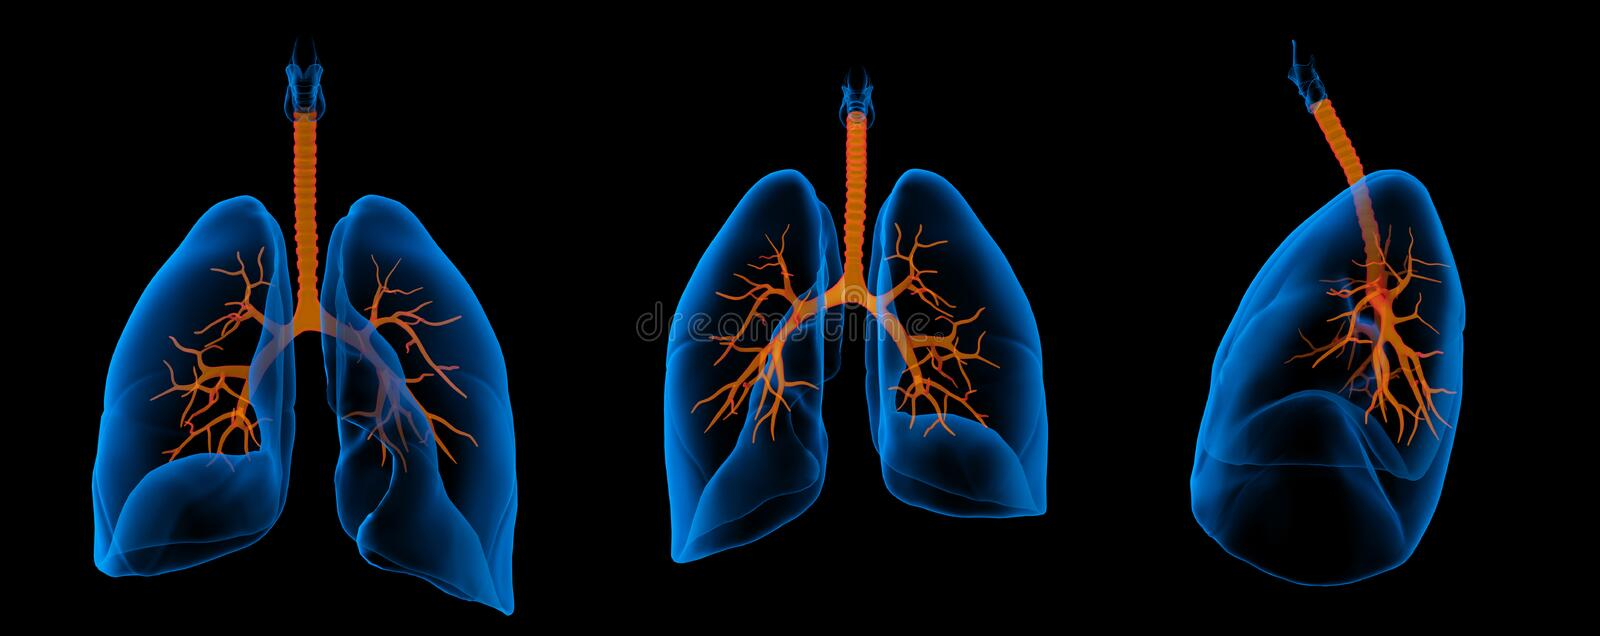 Lungs with visible bronchi. 3D medical illustration - lungs with visible bronchi royalty free illustration